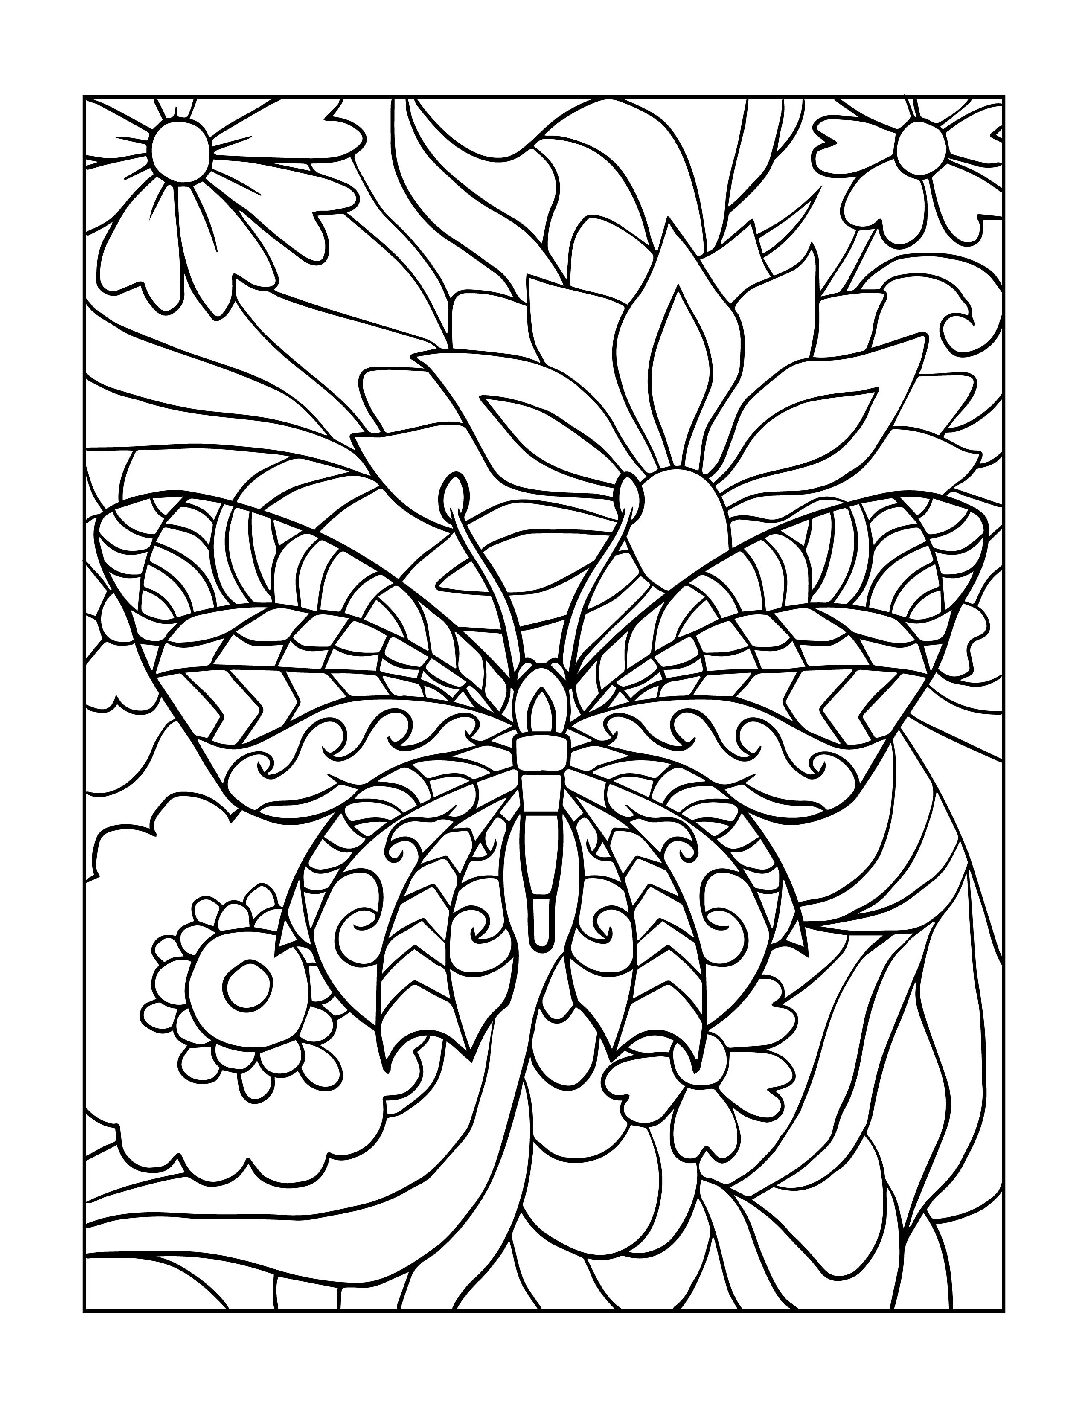 Coloring-Pages_Butterflies-1-01-2-pdf Free Printable Butterfly Colouring Pages